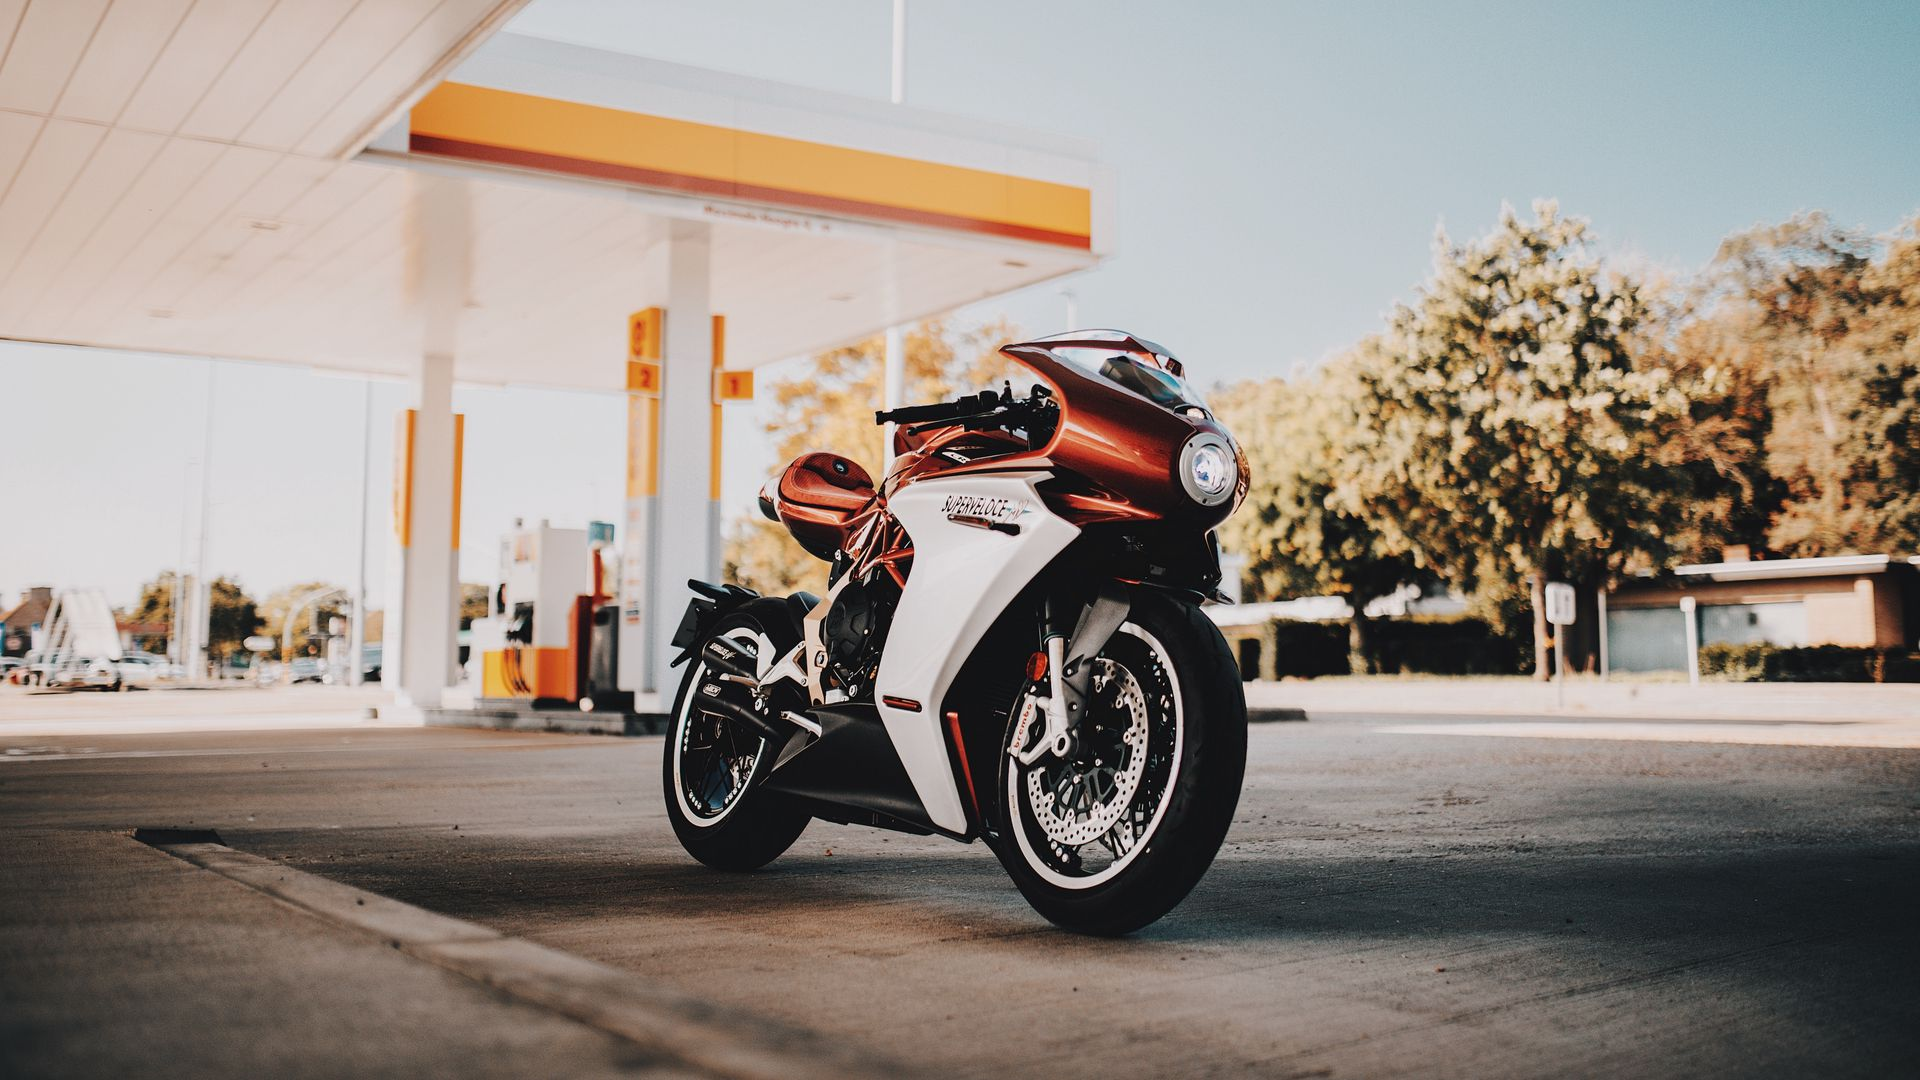 Superveloce, MV, Motorcycle, Bike Wallpapers Free Download